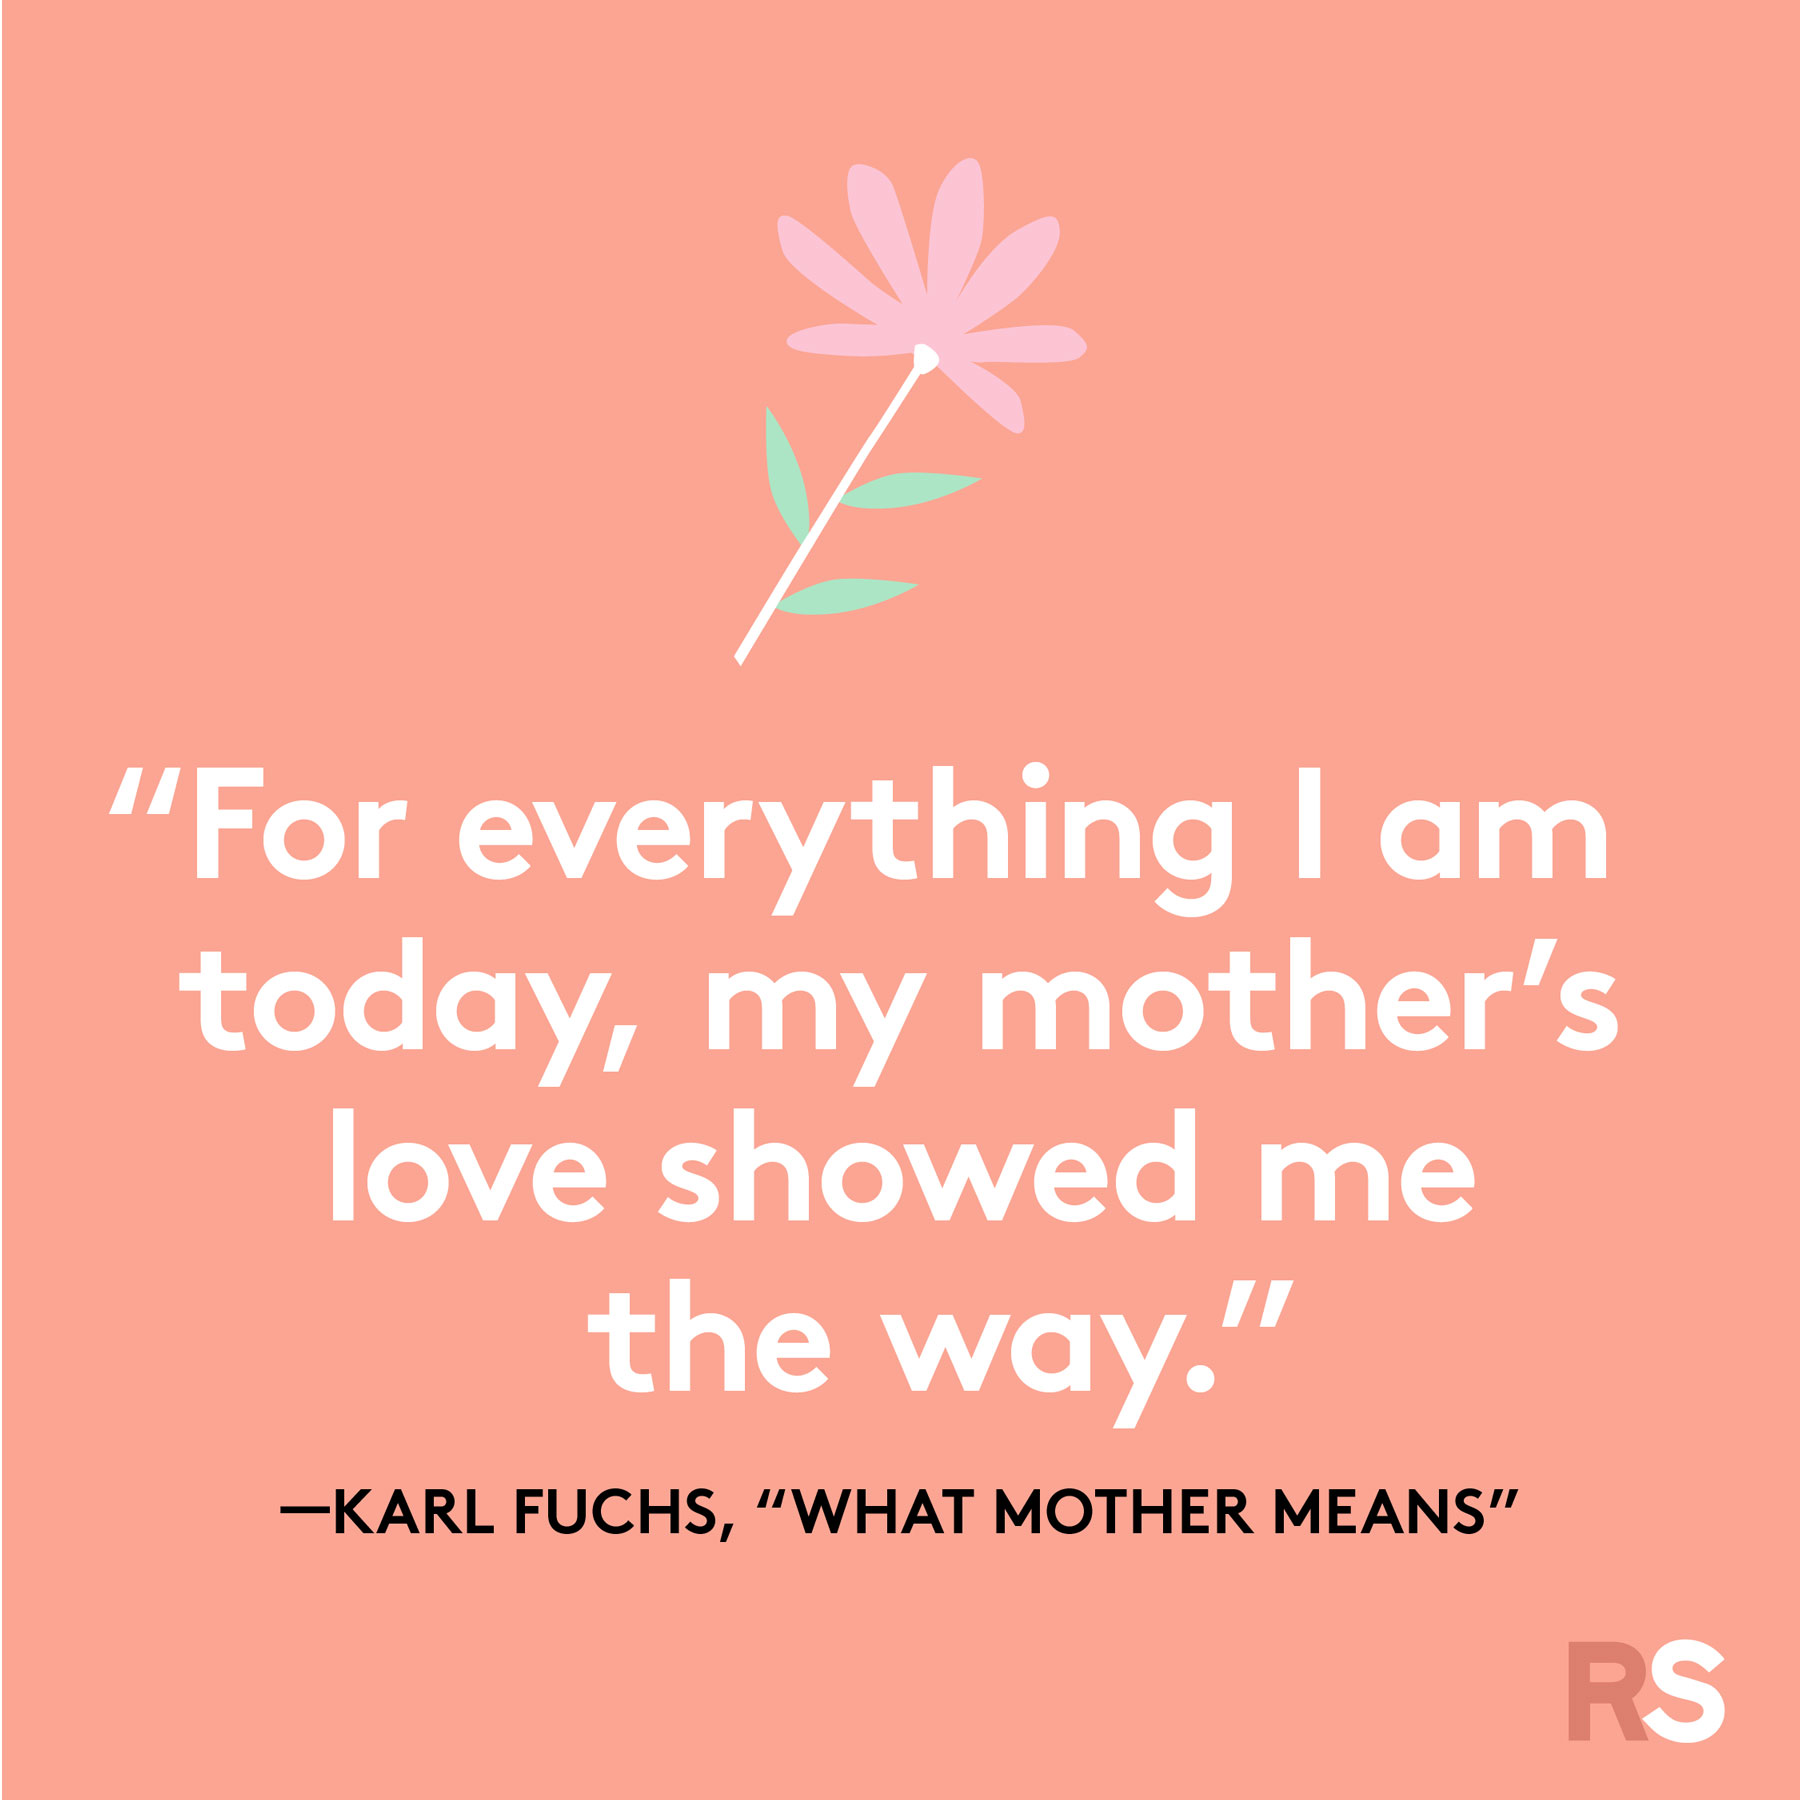 Mother's Day quotes and sayings - quote by Karl Fuchs